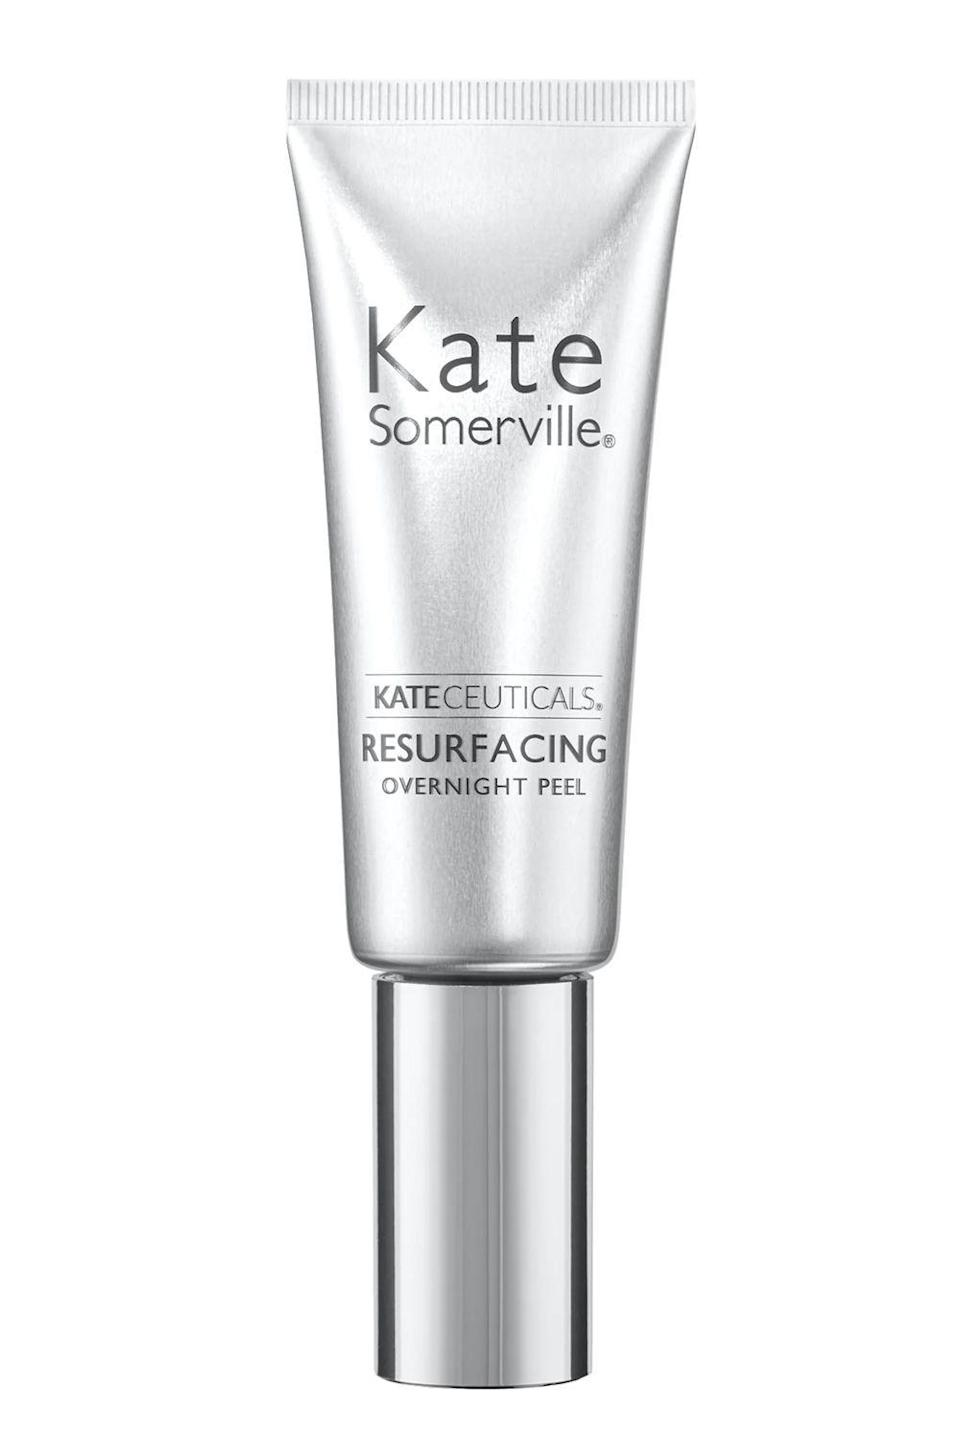 """<p><strong>Kate Somerville</strong></p><p>dermstore.com</p><p><strong>$88.00</strong></p><p><a href=""""https://go.redirectingat.com?id=74968X1596630&url=https%3A%2F%2Fwww.dermstore.com%2Fproduct_KateCeuticals%2BResurfacing%2BOvernight%2BPeel%2B_85867.htm&sref=https%3A%2F%2Fwww.cosmopolitan.com%2Fstyle-beauty%2Fbeauty%2Fg30554130%2Fbest-at-home-face-peel%2F"""" rel=""""nofollow noopener"""" target=""""_blank"""" data-ylk=""""slk:Shop Now"""" class=""""link rapid-noclick-resp"""">Shop Now</a></p><p>This chemical peel <strong>works its magic while you sleep</strong> to give you smoother, fresher looking skin come morning. Apply a thin layer to clean skin before bed, let it set for a few minutes, and then go to sleep. The combo of glycolic acid, retinol, and <a href=""""https://www.cosmopolitan.com/style-beauty/beauty/a27609307/vitamin-e-for-skin-benefits-products/"""" rel=""""nofollow noopener"""" target=""""_blank"""" data-ylk=""""slk:vitamin E"""" class=""""link rapid-noclick-resp"""">vitamin E</a> are clutch for shrinking pores and smoothing fine lines.</p>"""